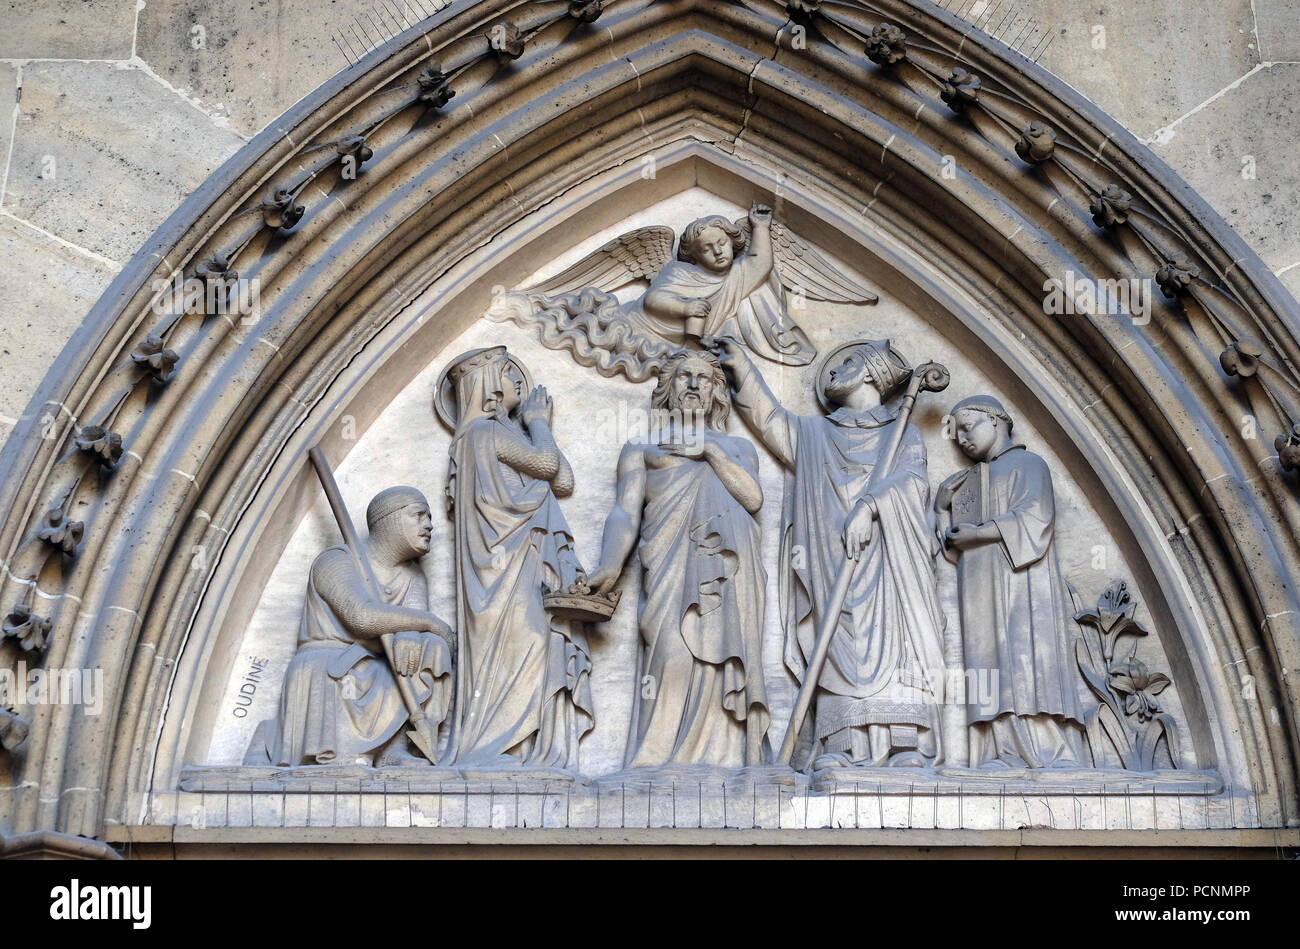 Bass relief on the portal of the Basilica of Saint Clotilde in Paris, France Stock Photo